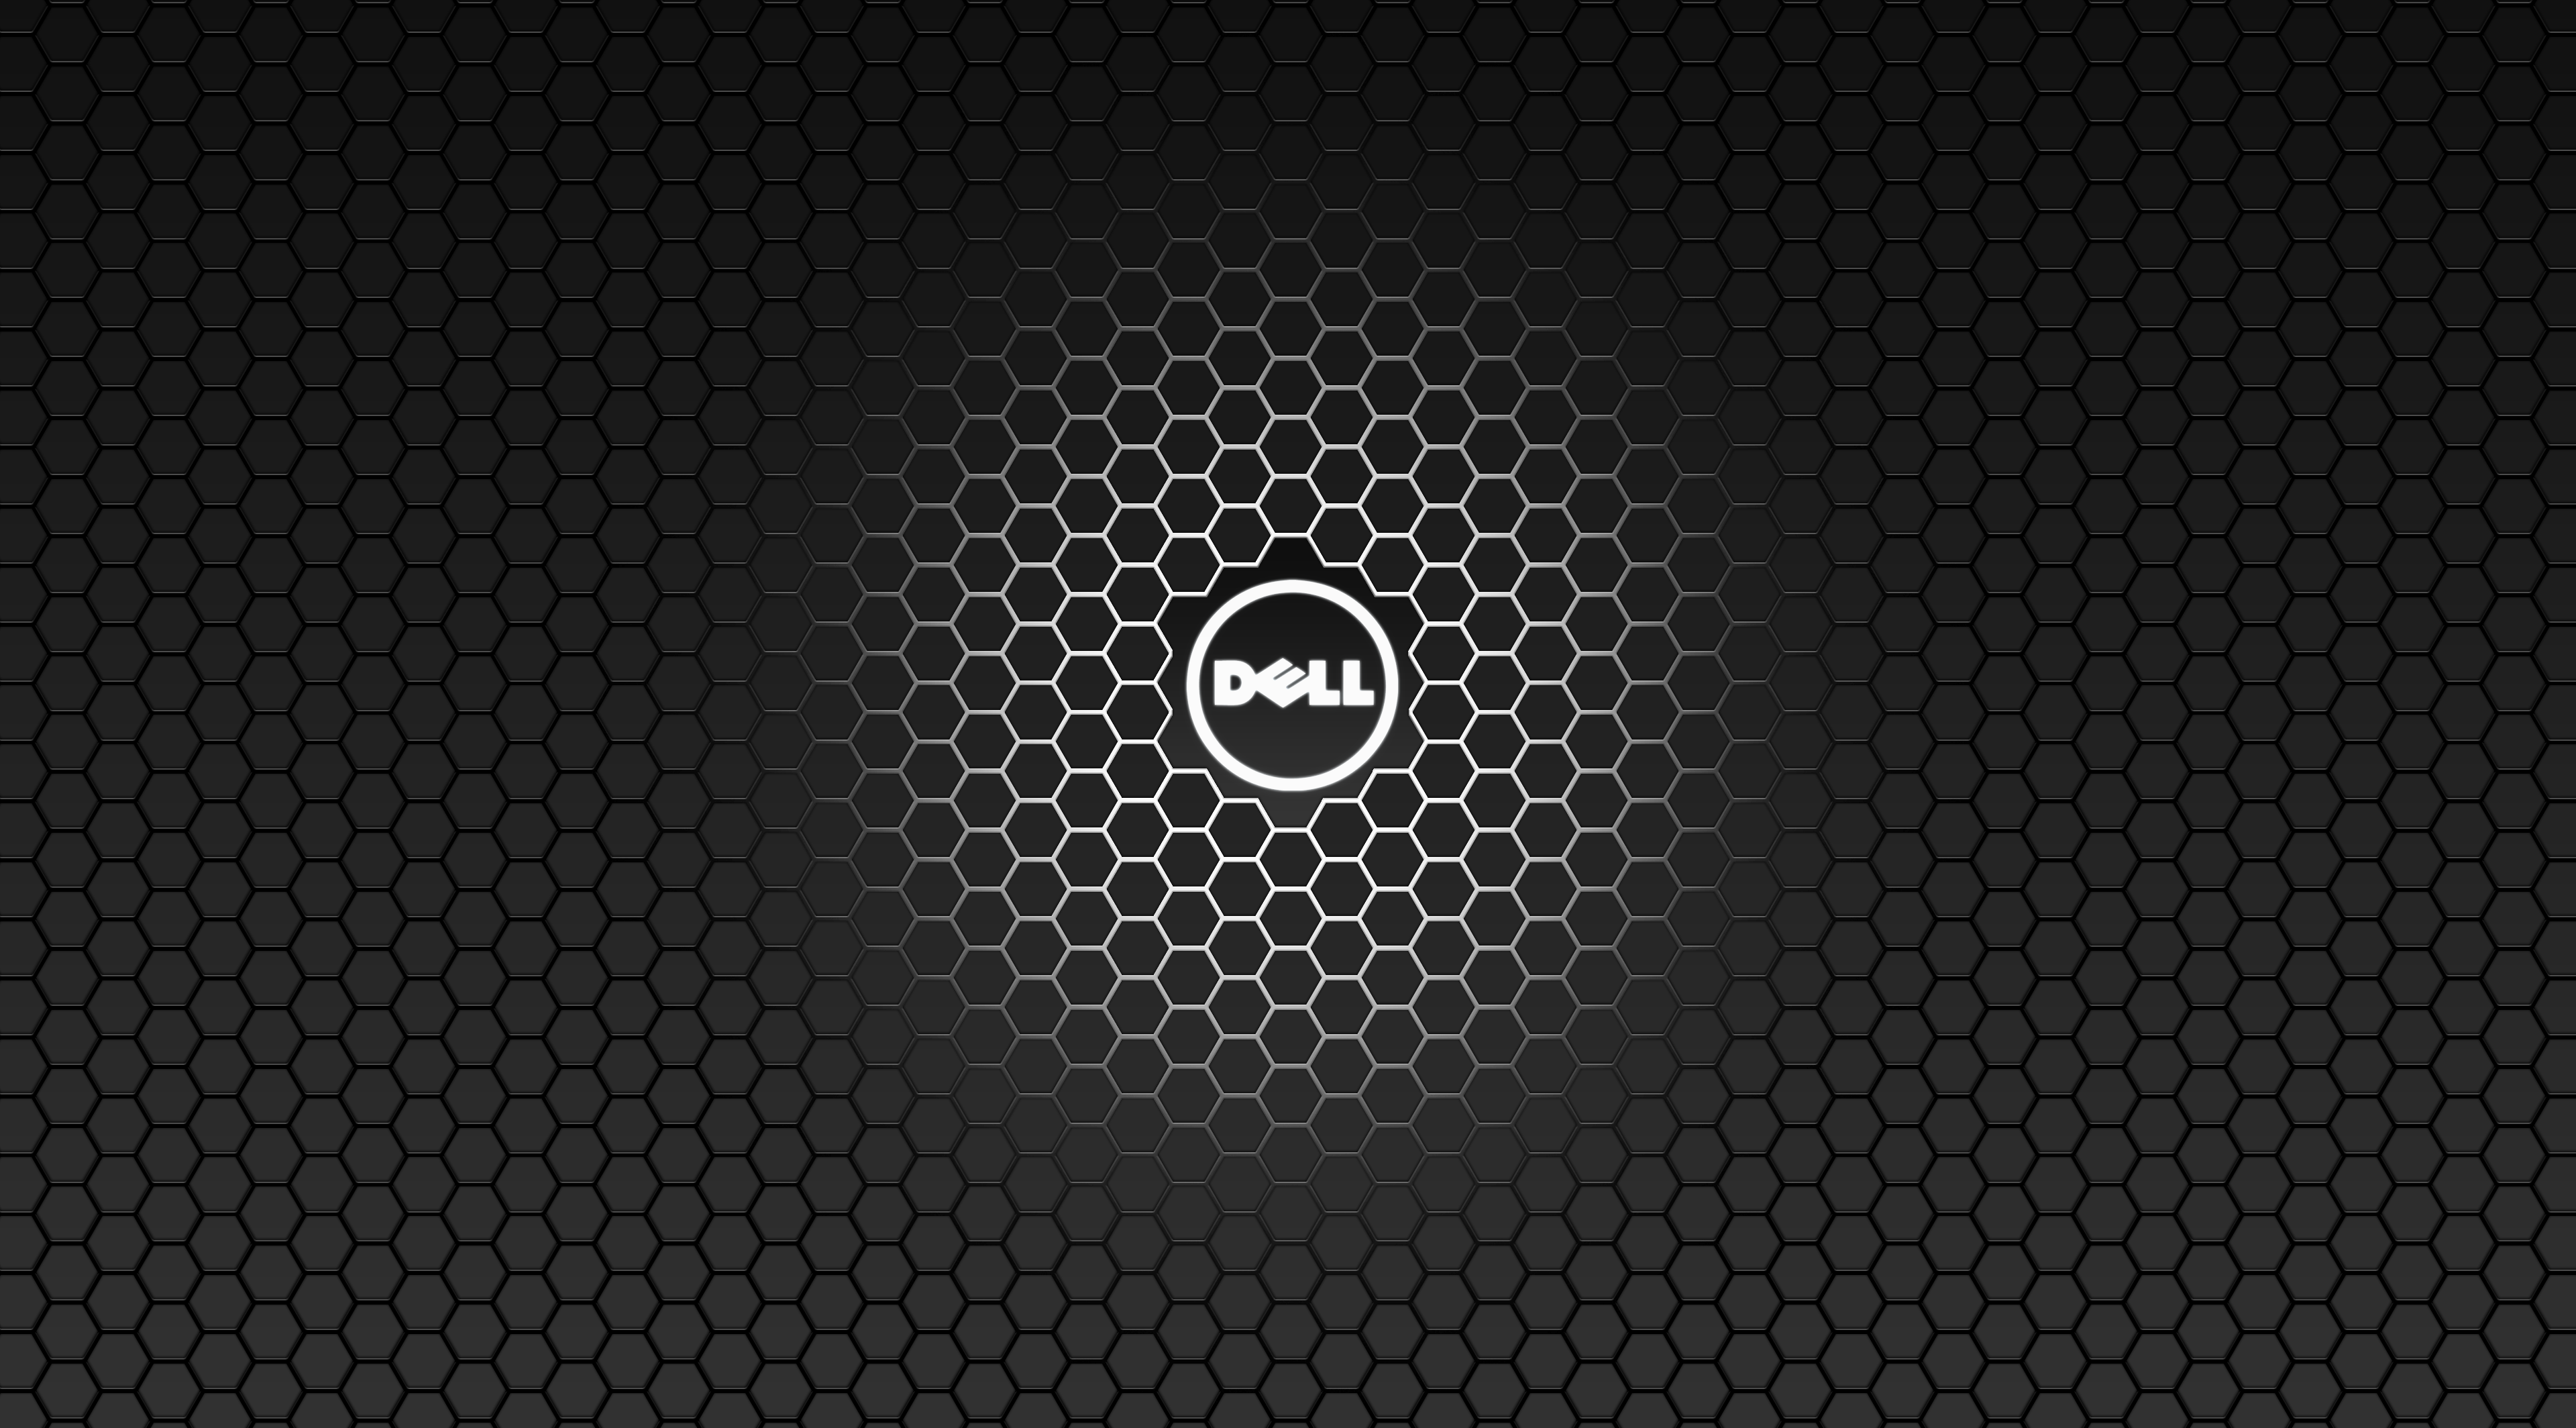 Dell Wallpaper: Dell Wallpaper HD Wallpaper